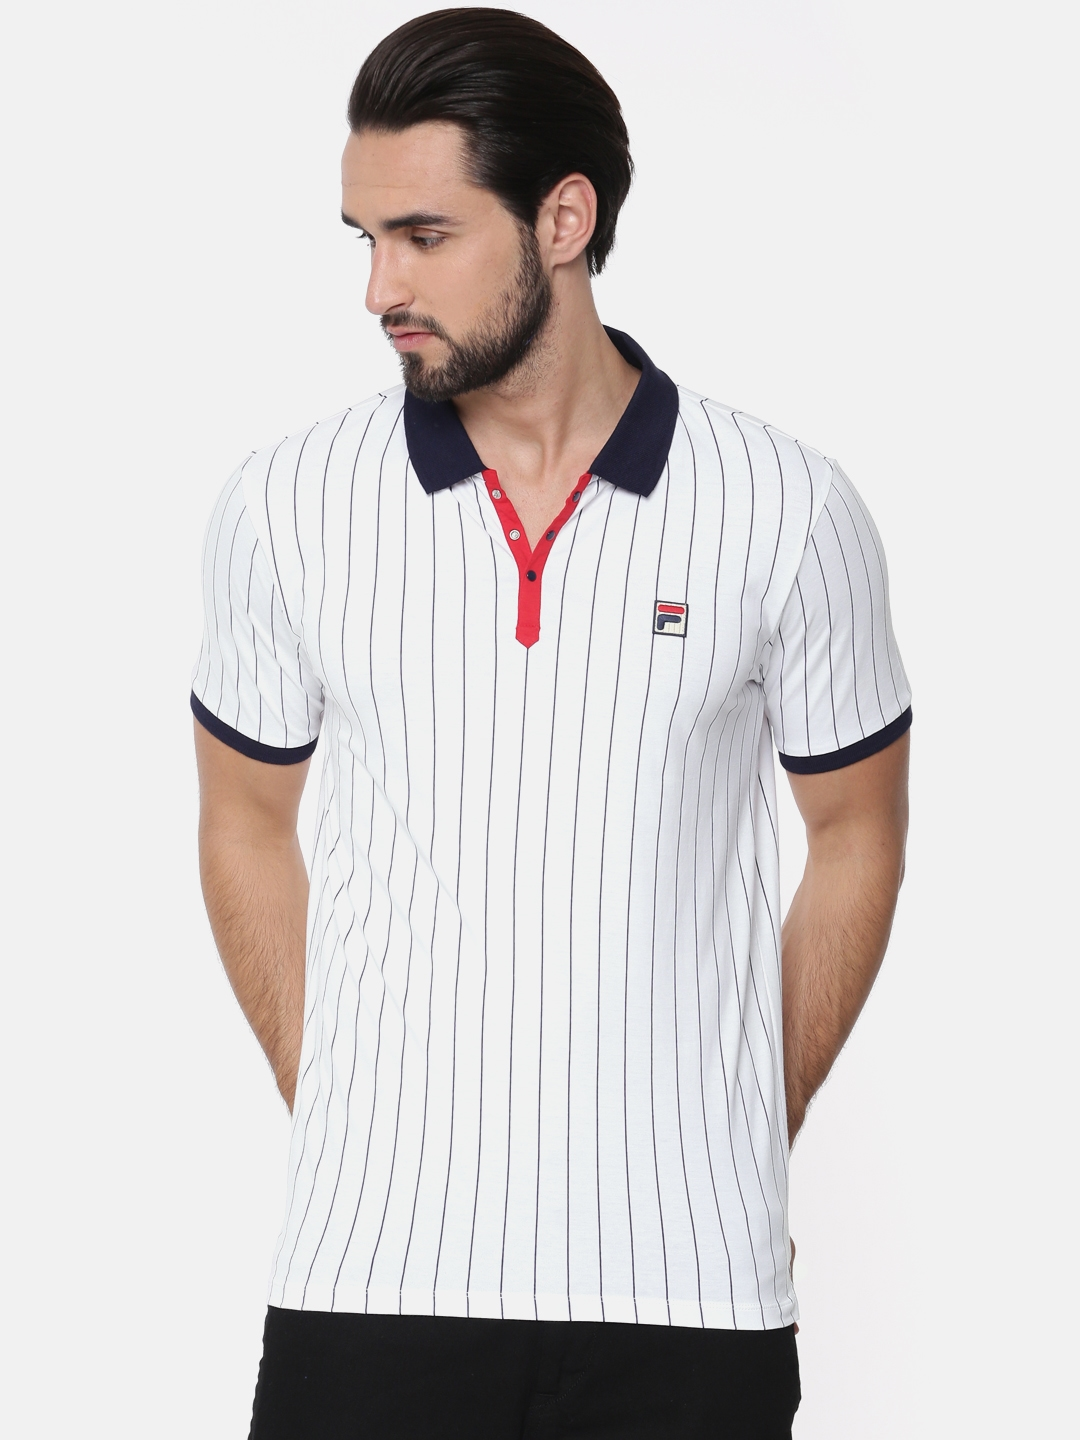 aa52dec3bd Buy FILA Men White & Navy Blue Striped Polo T Shirt - Tshirts for ...